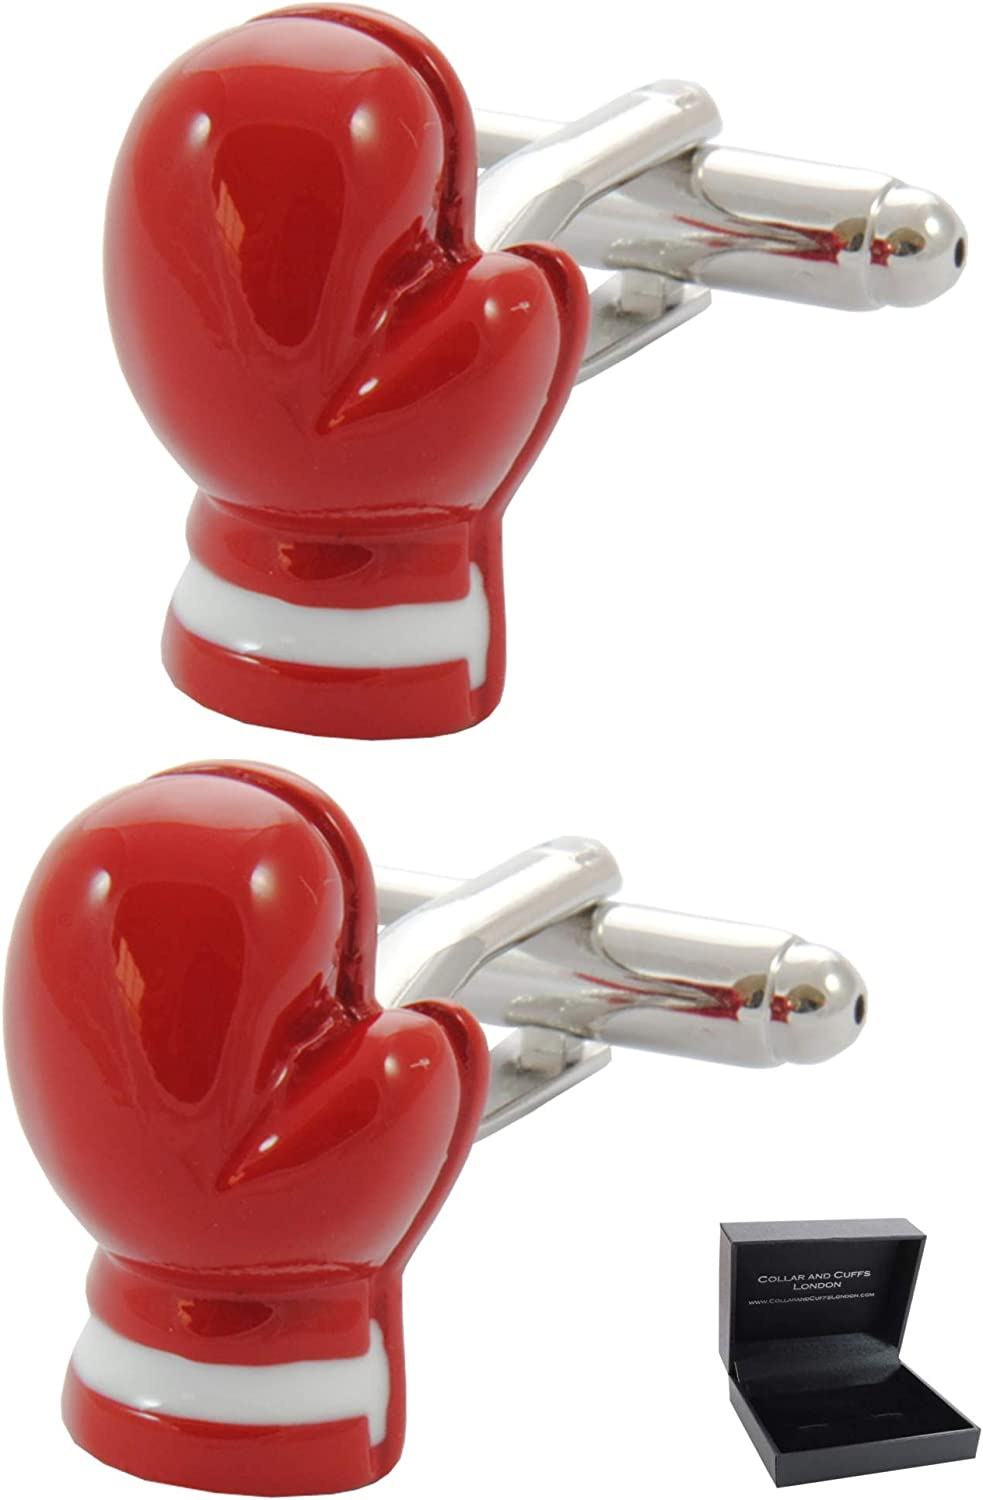 COLLAR AND CUFFS LONDON - Premium Cufflinks with Gift Box - Boxing Glove - Sport Ring Fight Referee Punch - Red Color